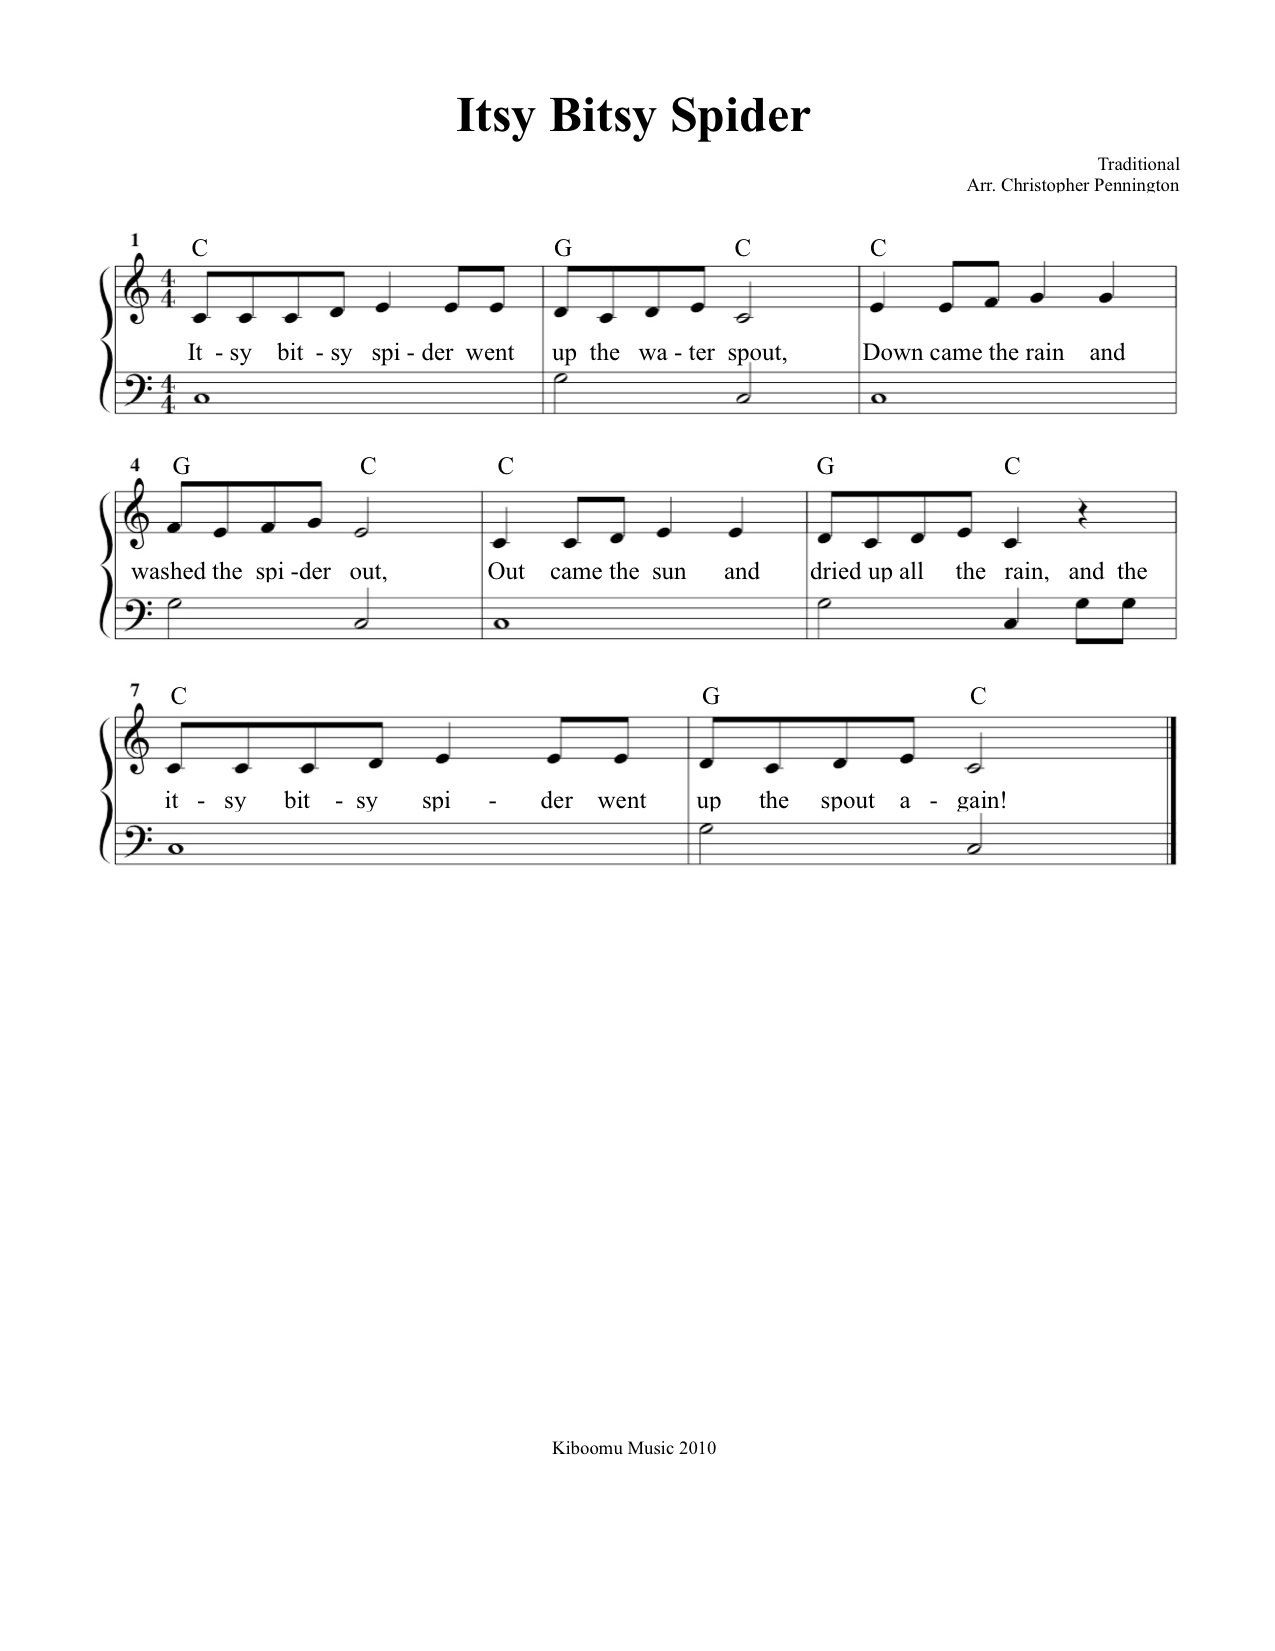 Free Sheet Music Itsy Bitsy Spider Sheet Music And Song